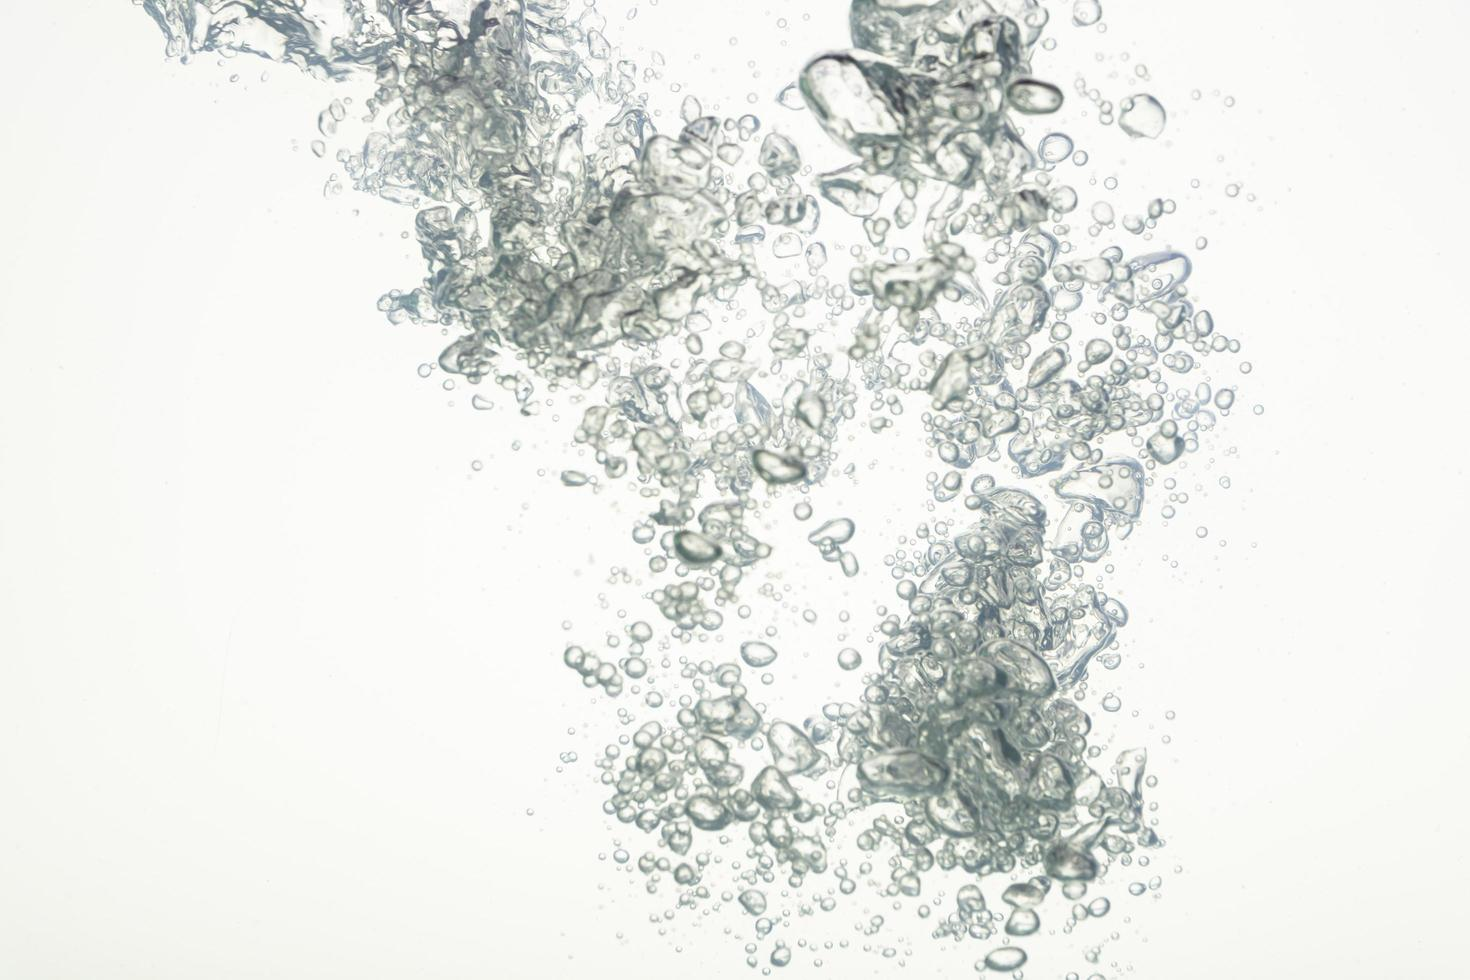 Bubbles in the water photo